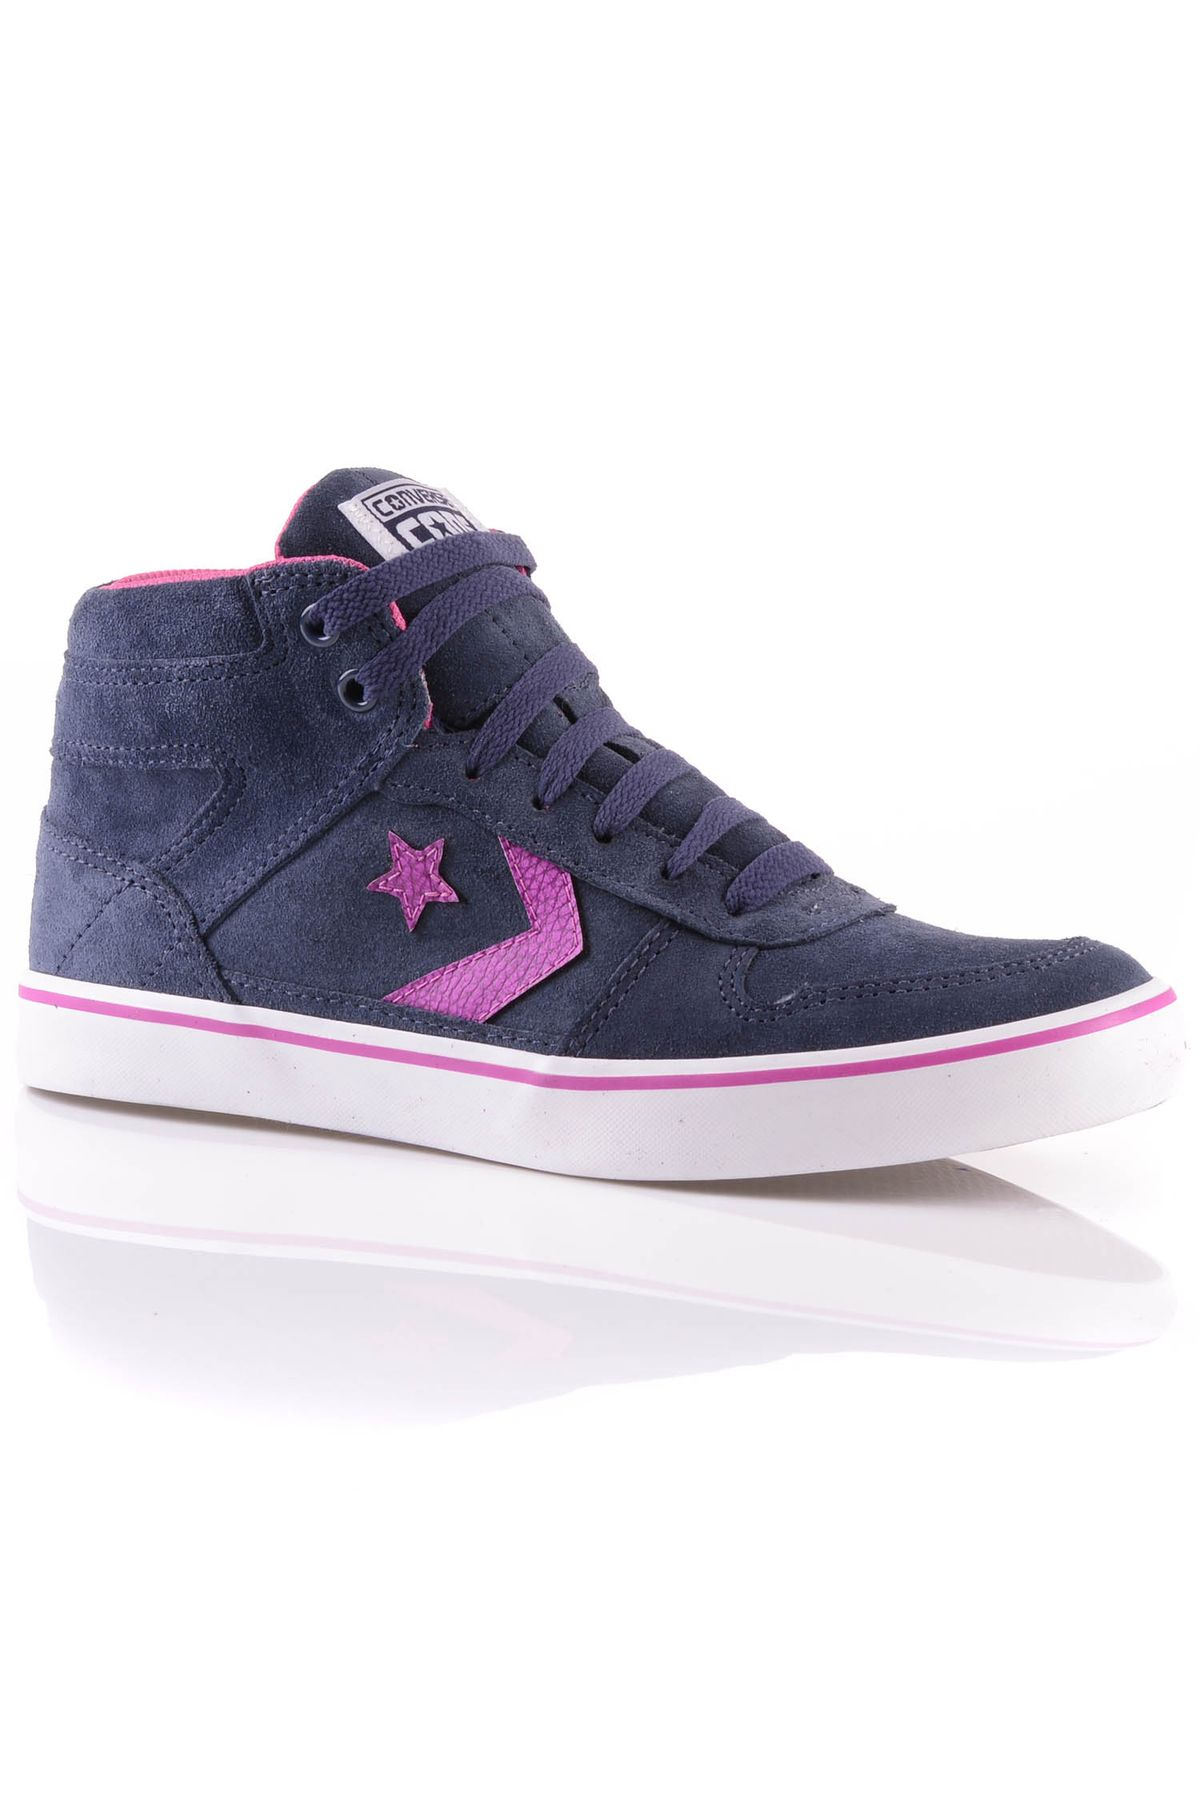 44e9d6736c Tênis Converse All Star Downtown